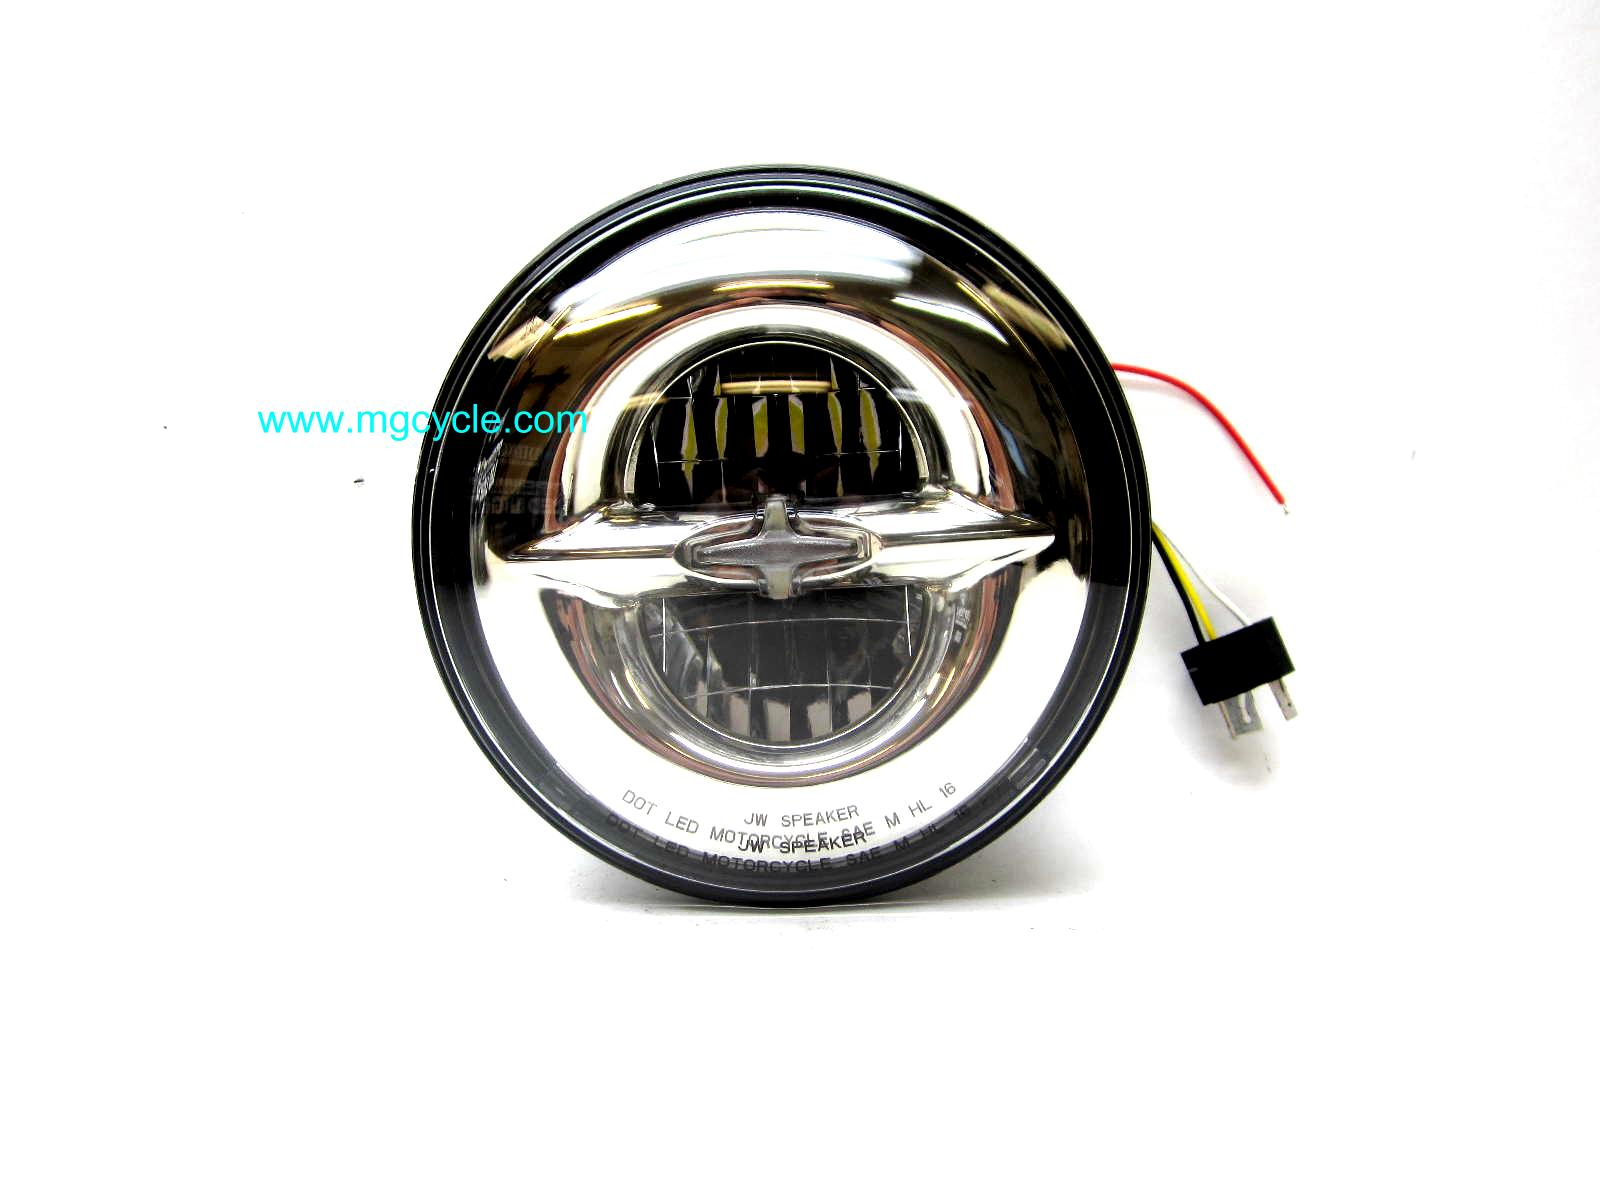 7 inch LED headlight 55/60 watt equivalent